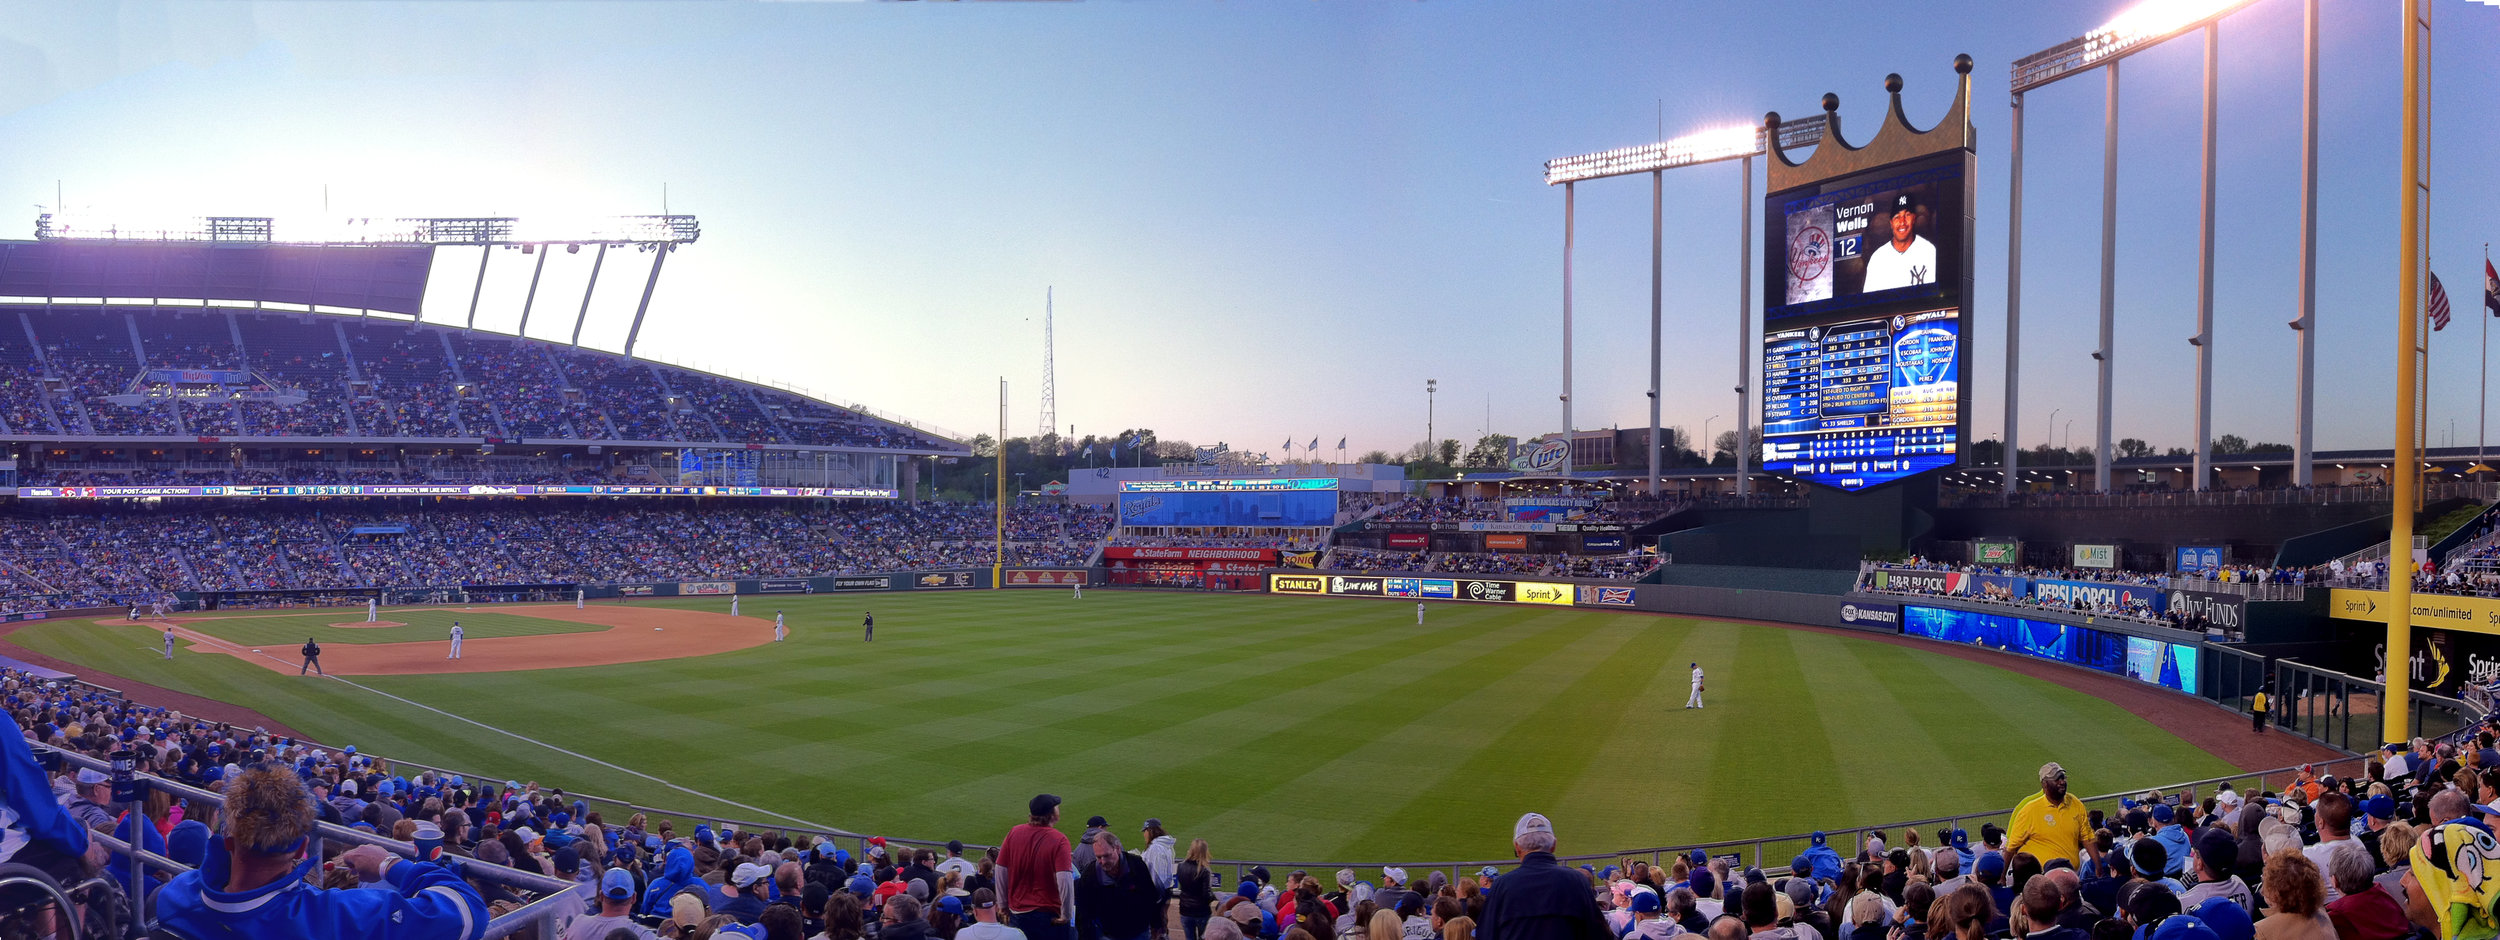 Kauffman Field (Kansas City) - The only other mid-century-modern stadium in the league. It's got a nice feel to it. Kansas City also has the best barbeque I've ever had IN MY LIFE. I didn't have a chance to go, but the Negro League Hall of Fame is there as well.